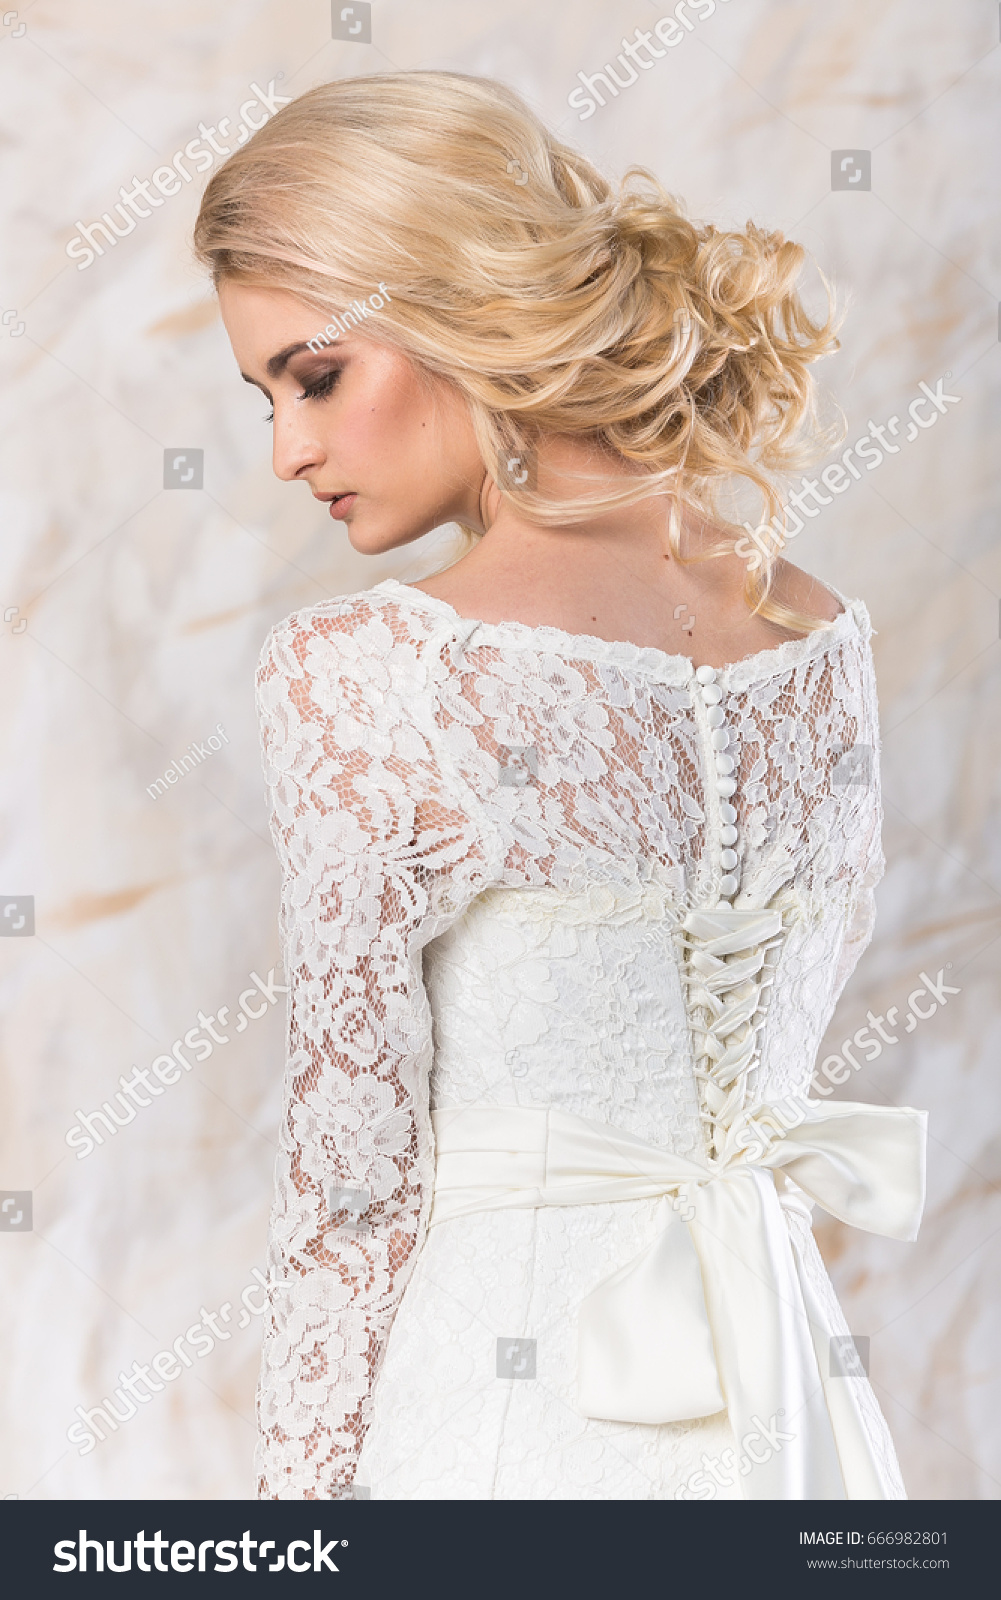 Fashionable Gown Beautiful Blonde Model Bride Stock Photo (Royalty ...